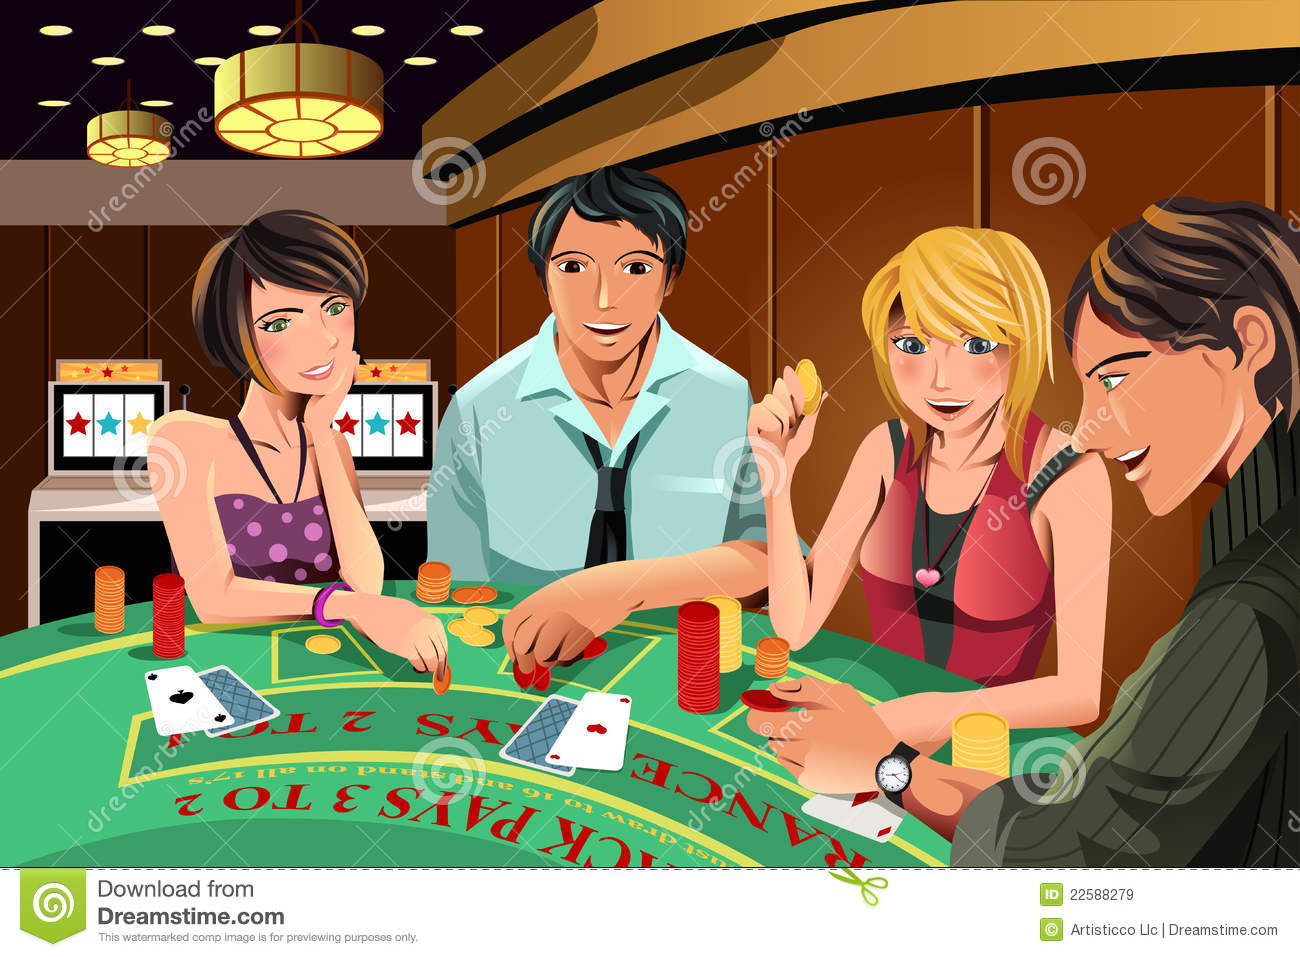 Free pictures of people gambling blue square casino slots